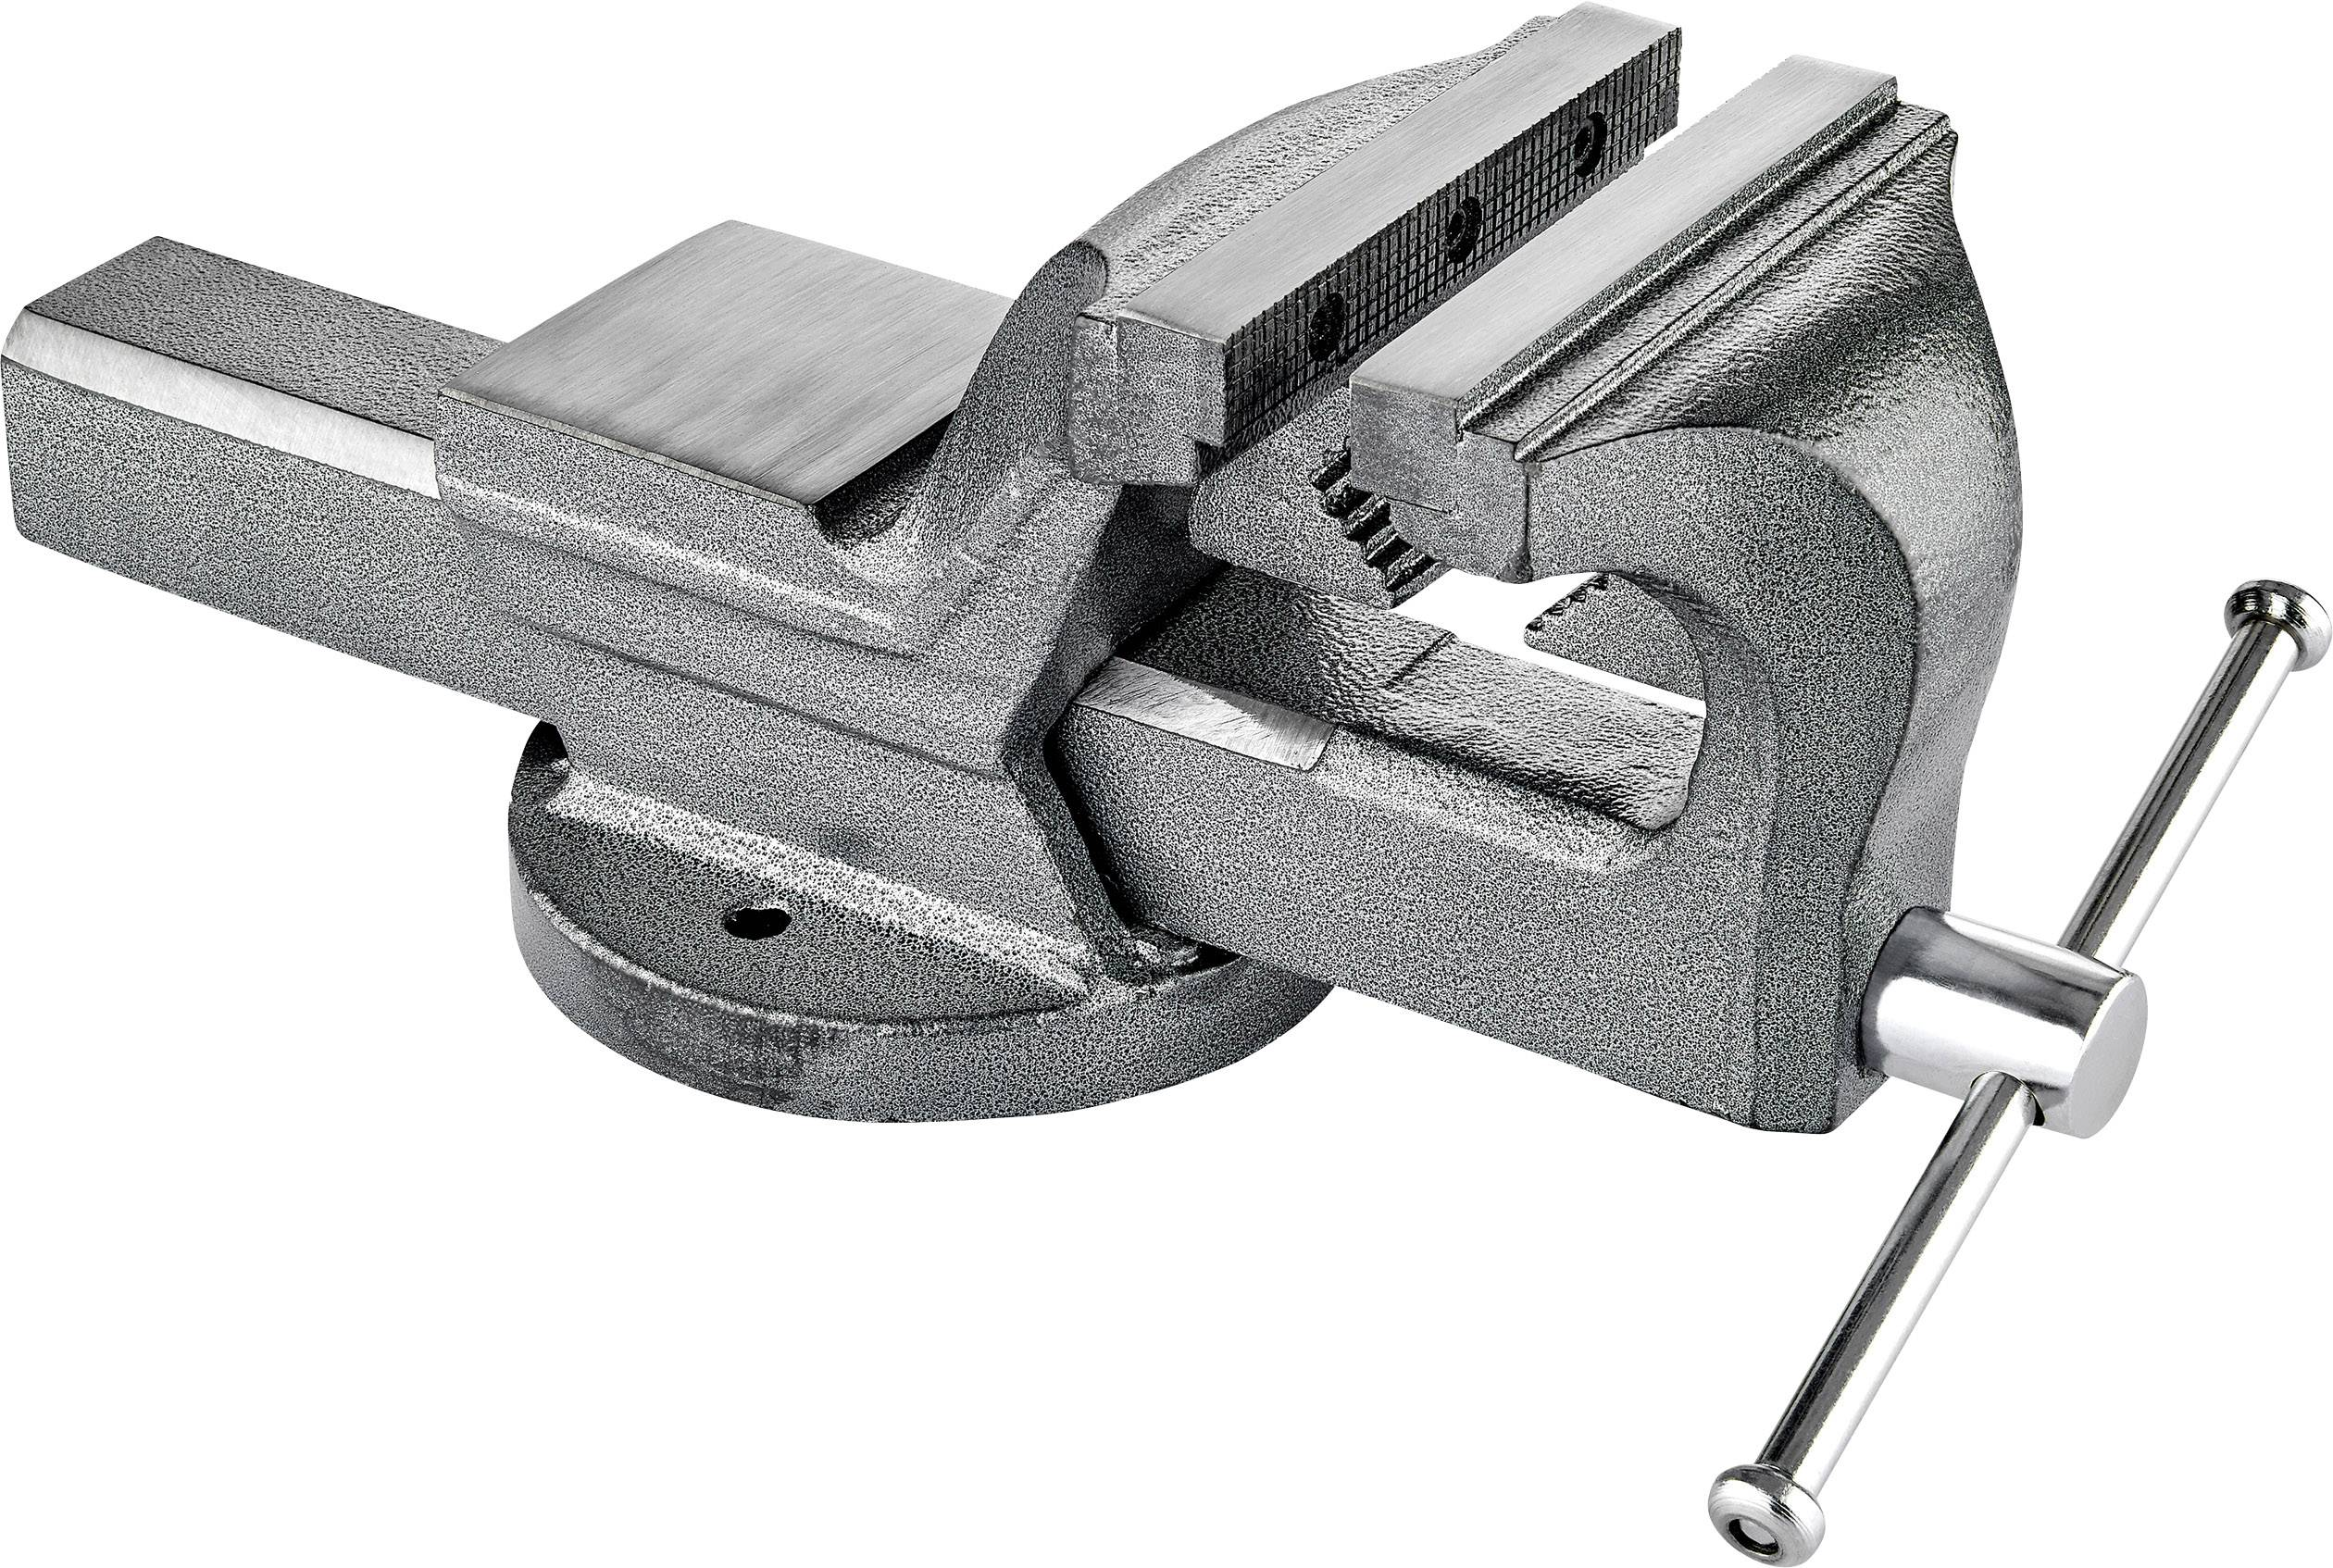 150 mm Opening Toolcraft Vise Screw Becchi//Jaw Width 125 MM max.